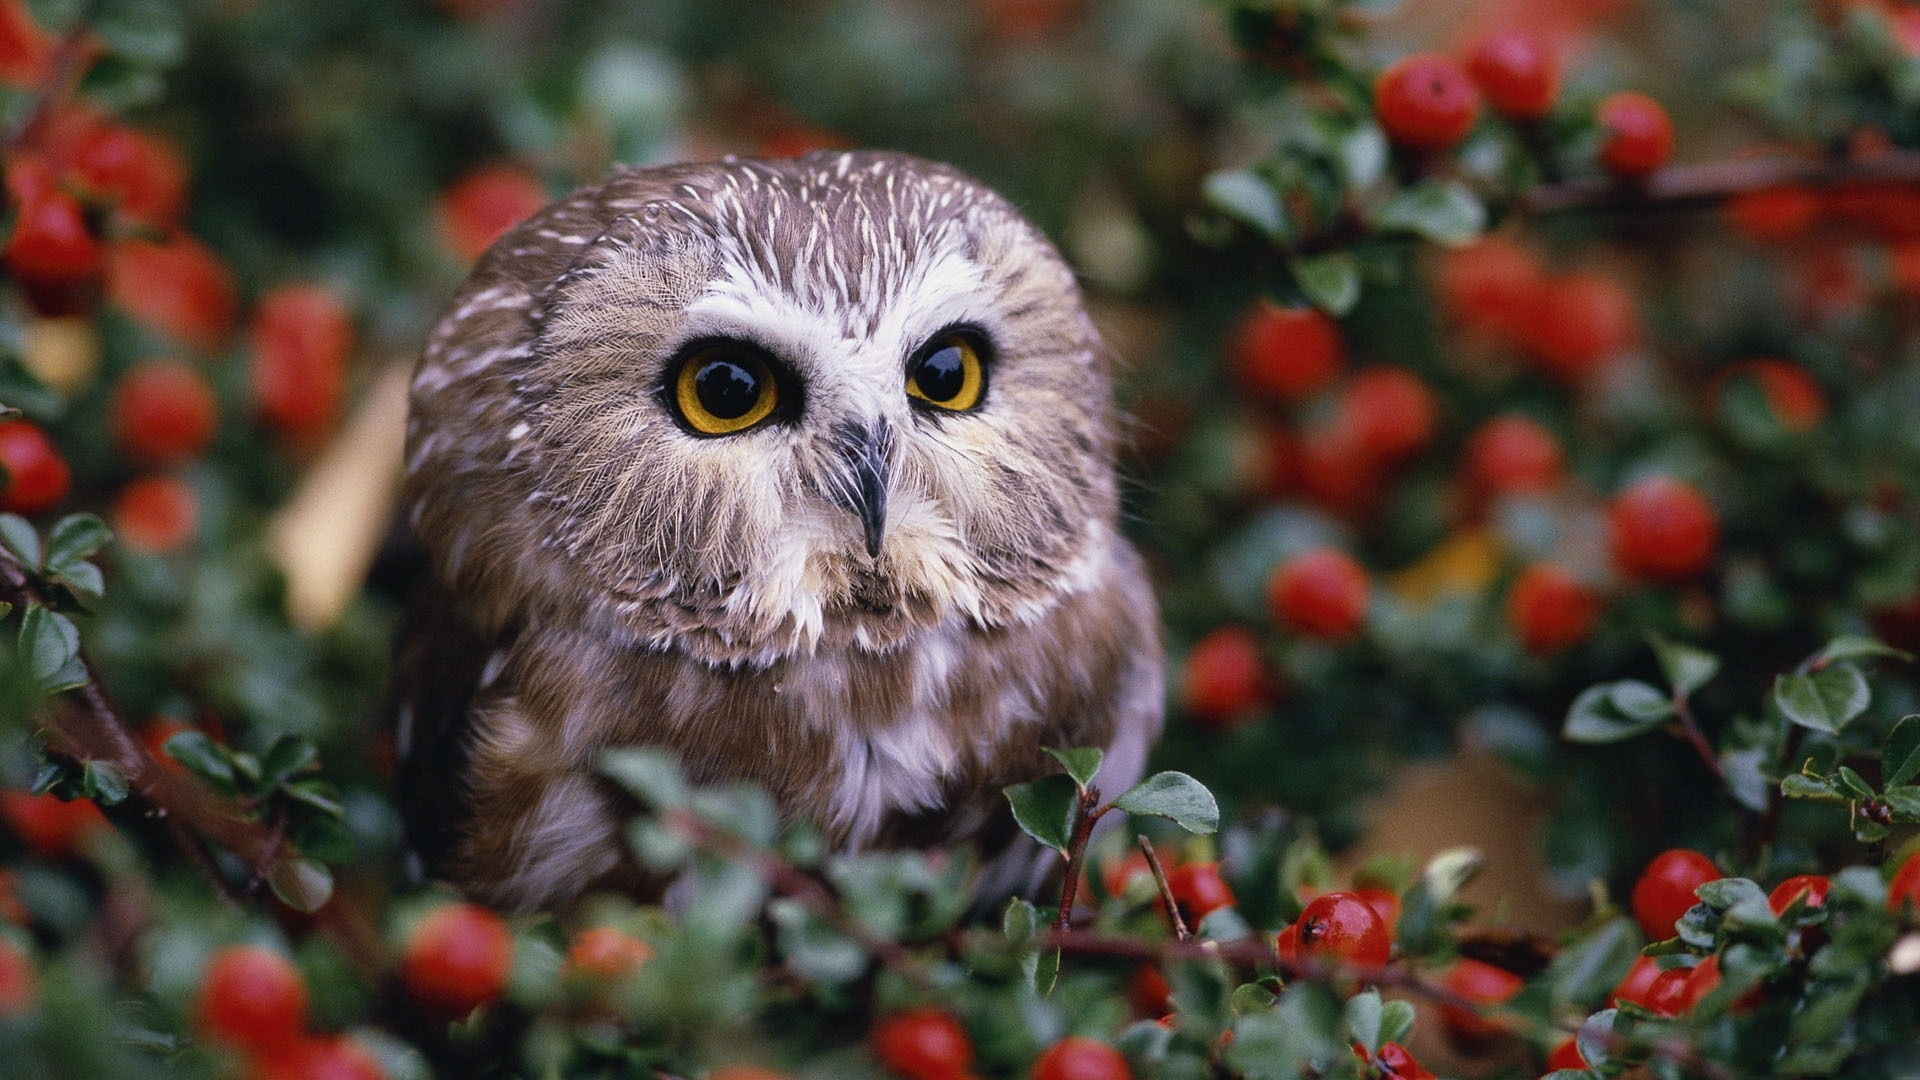 46359 download wallpaper Animals, Birds, Owl screensavers and pictures for free